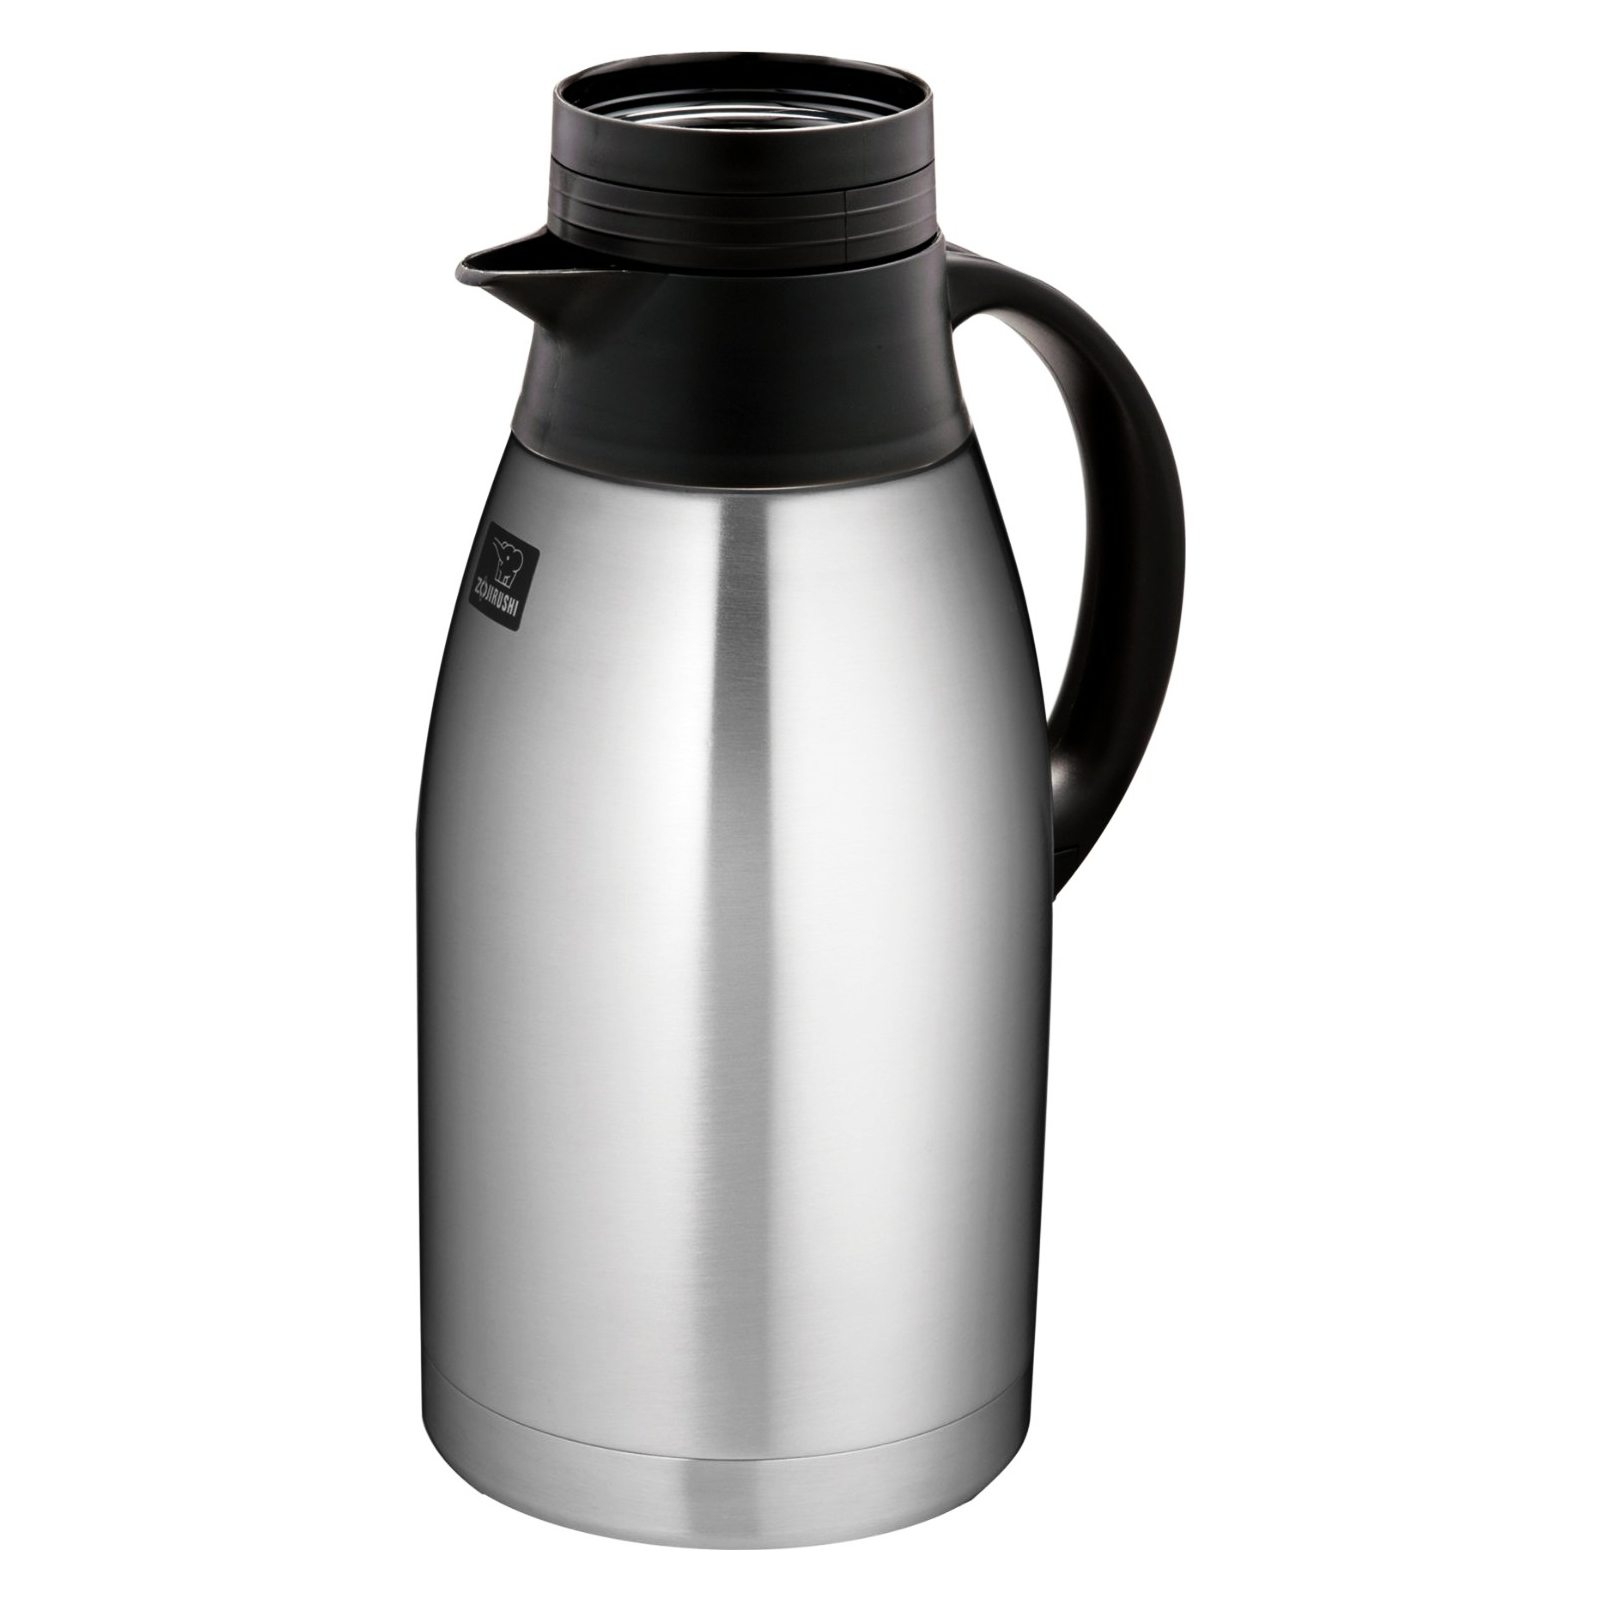 Zojirushi Stainless Steel 64 Ounce Thermal Vacuum Carafe